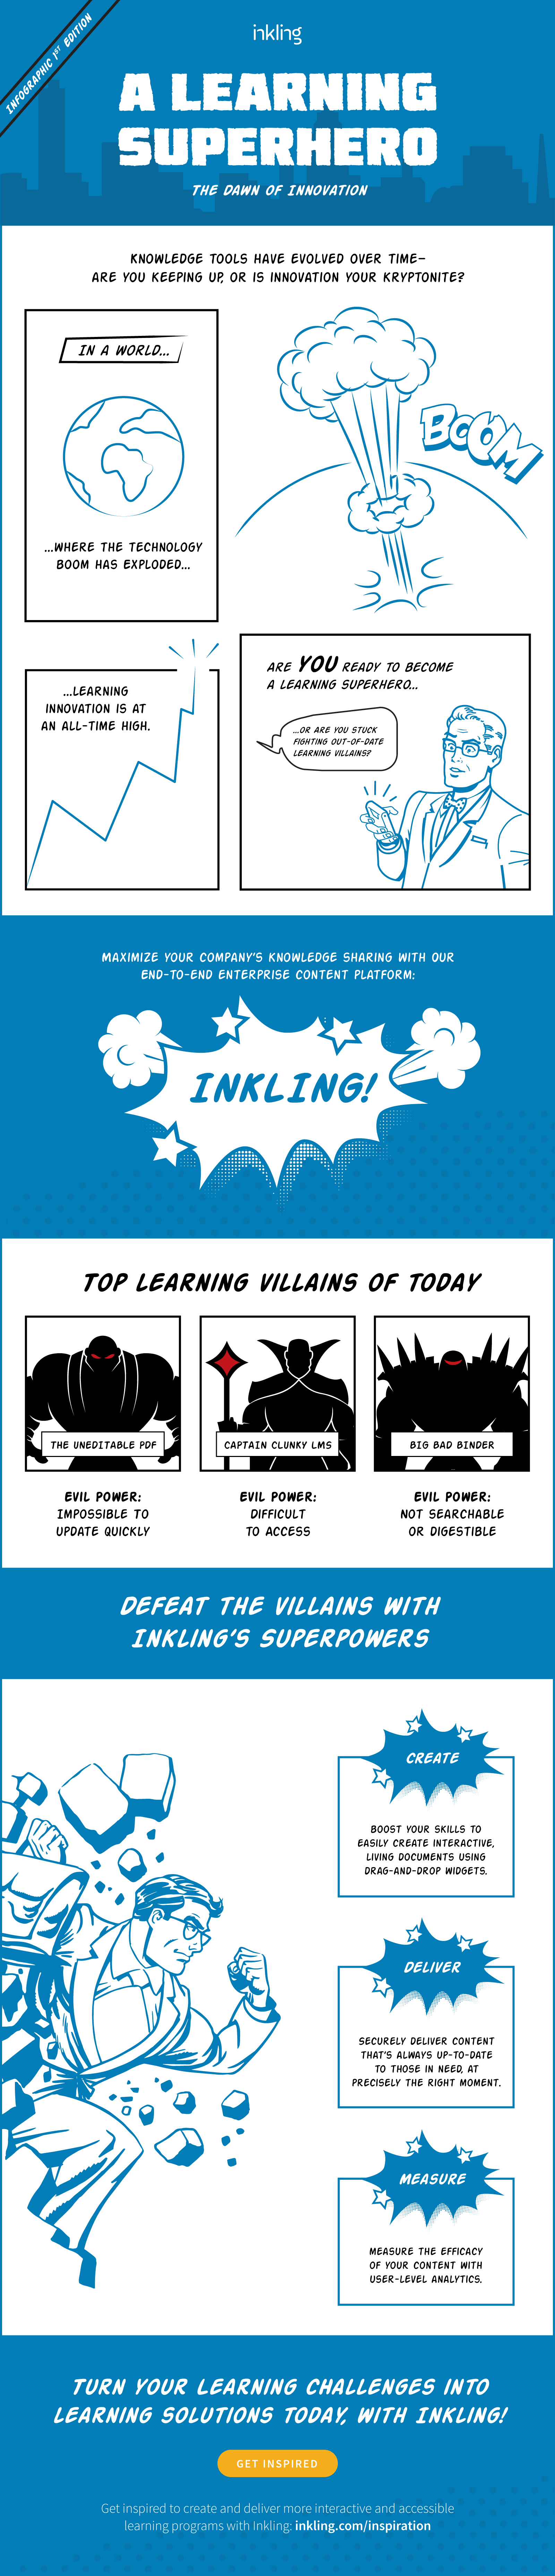 A Learning Superhero - The Dawn of Innovation